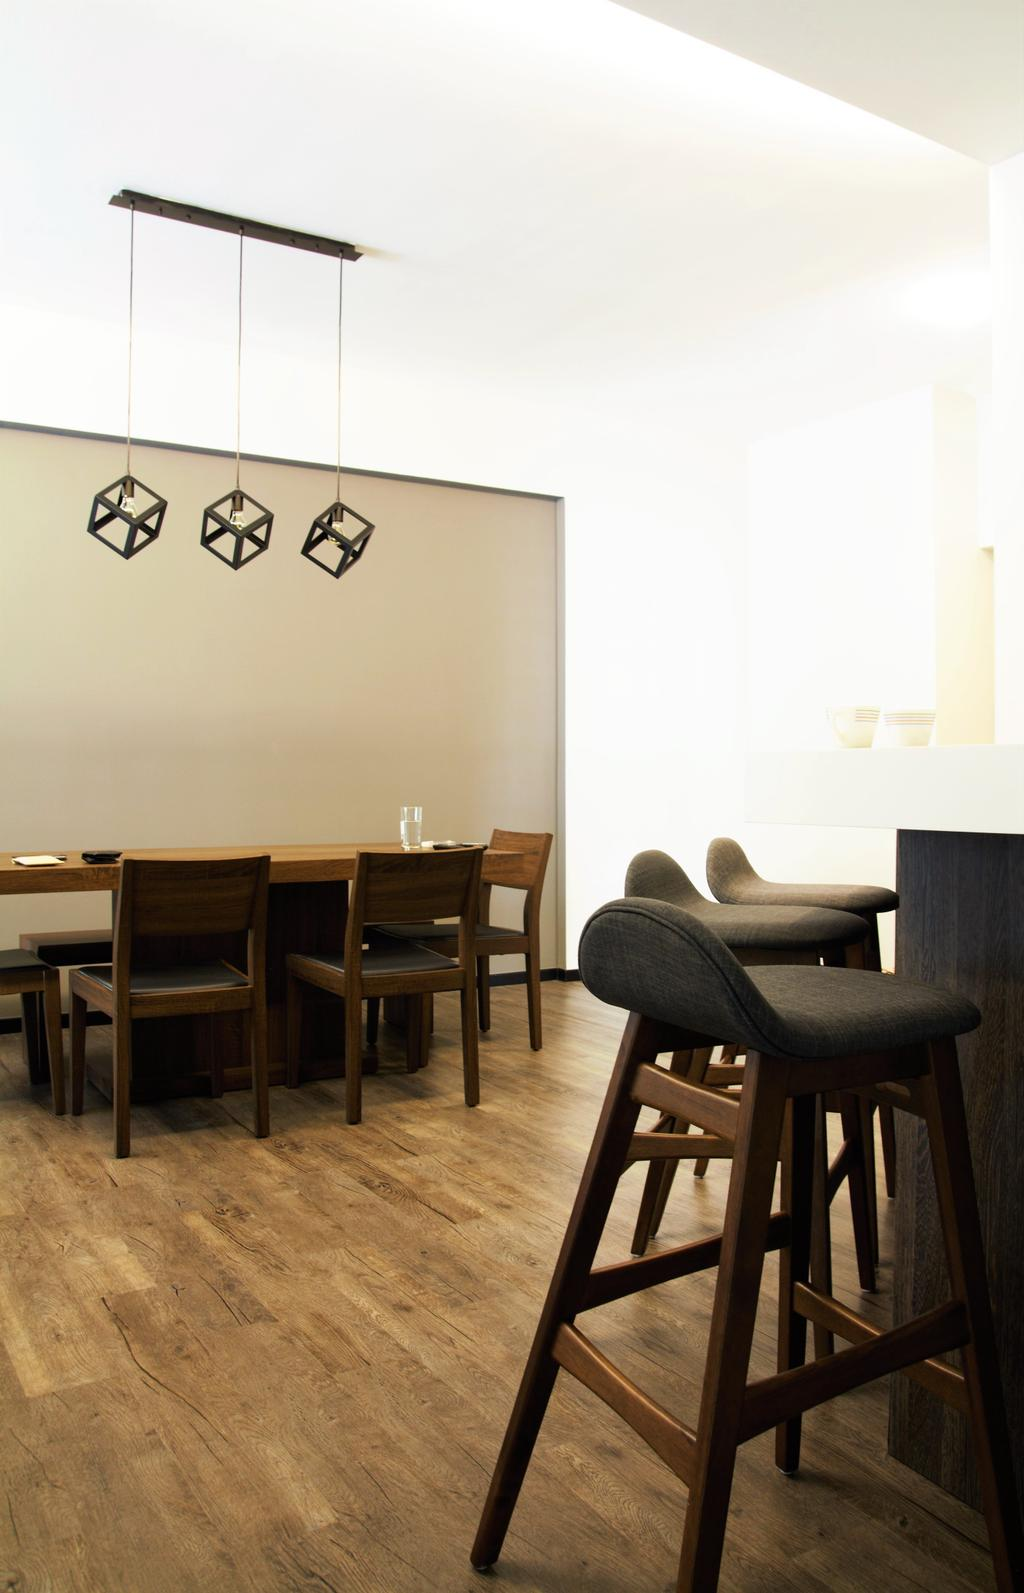 HDB, Tampines, Interior Designer, Intrigue-d Design Consultancy, Chair, Furniture, Dining Table, Table